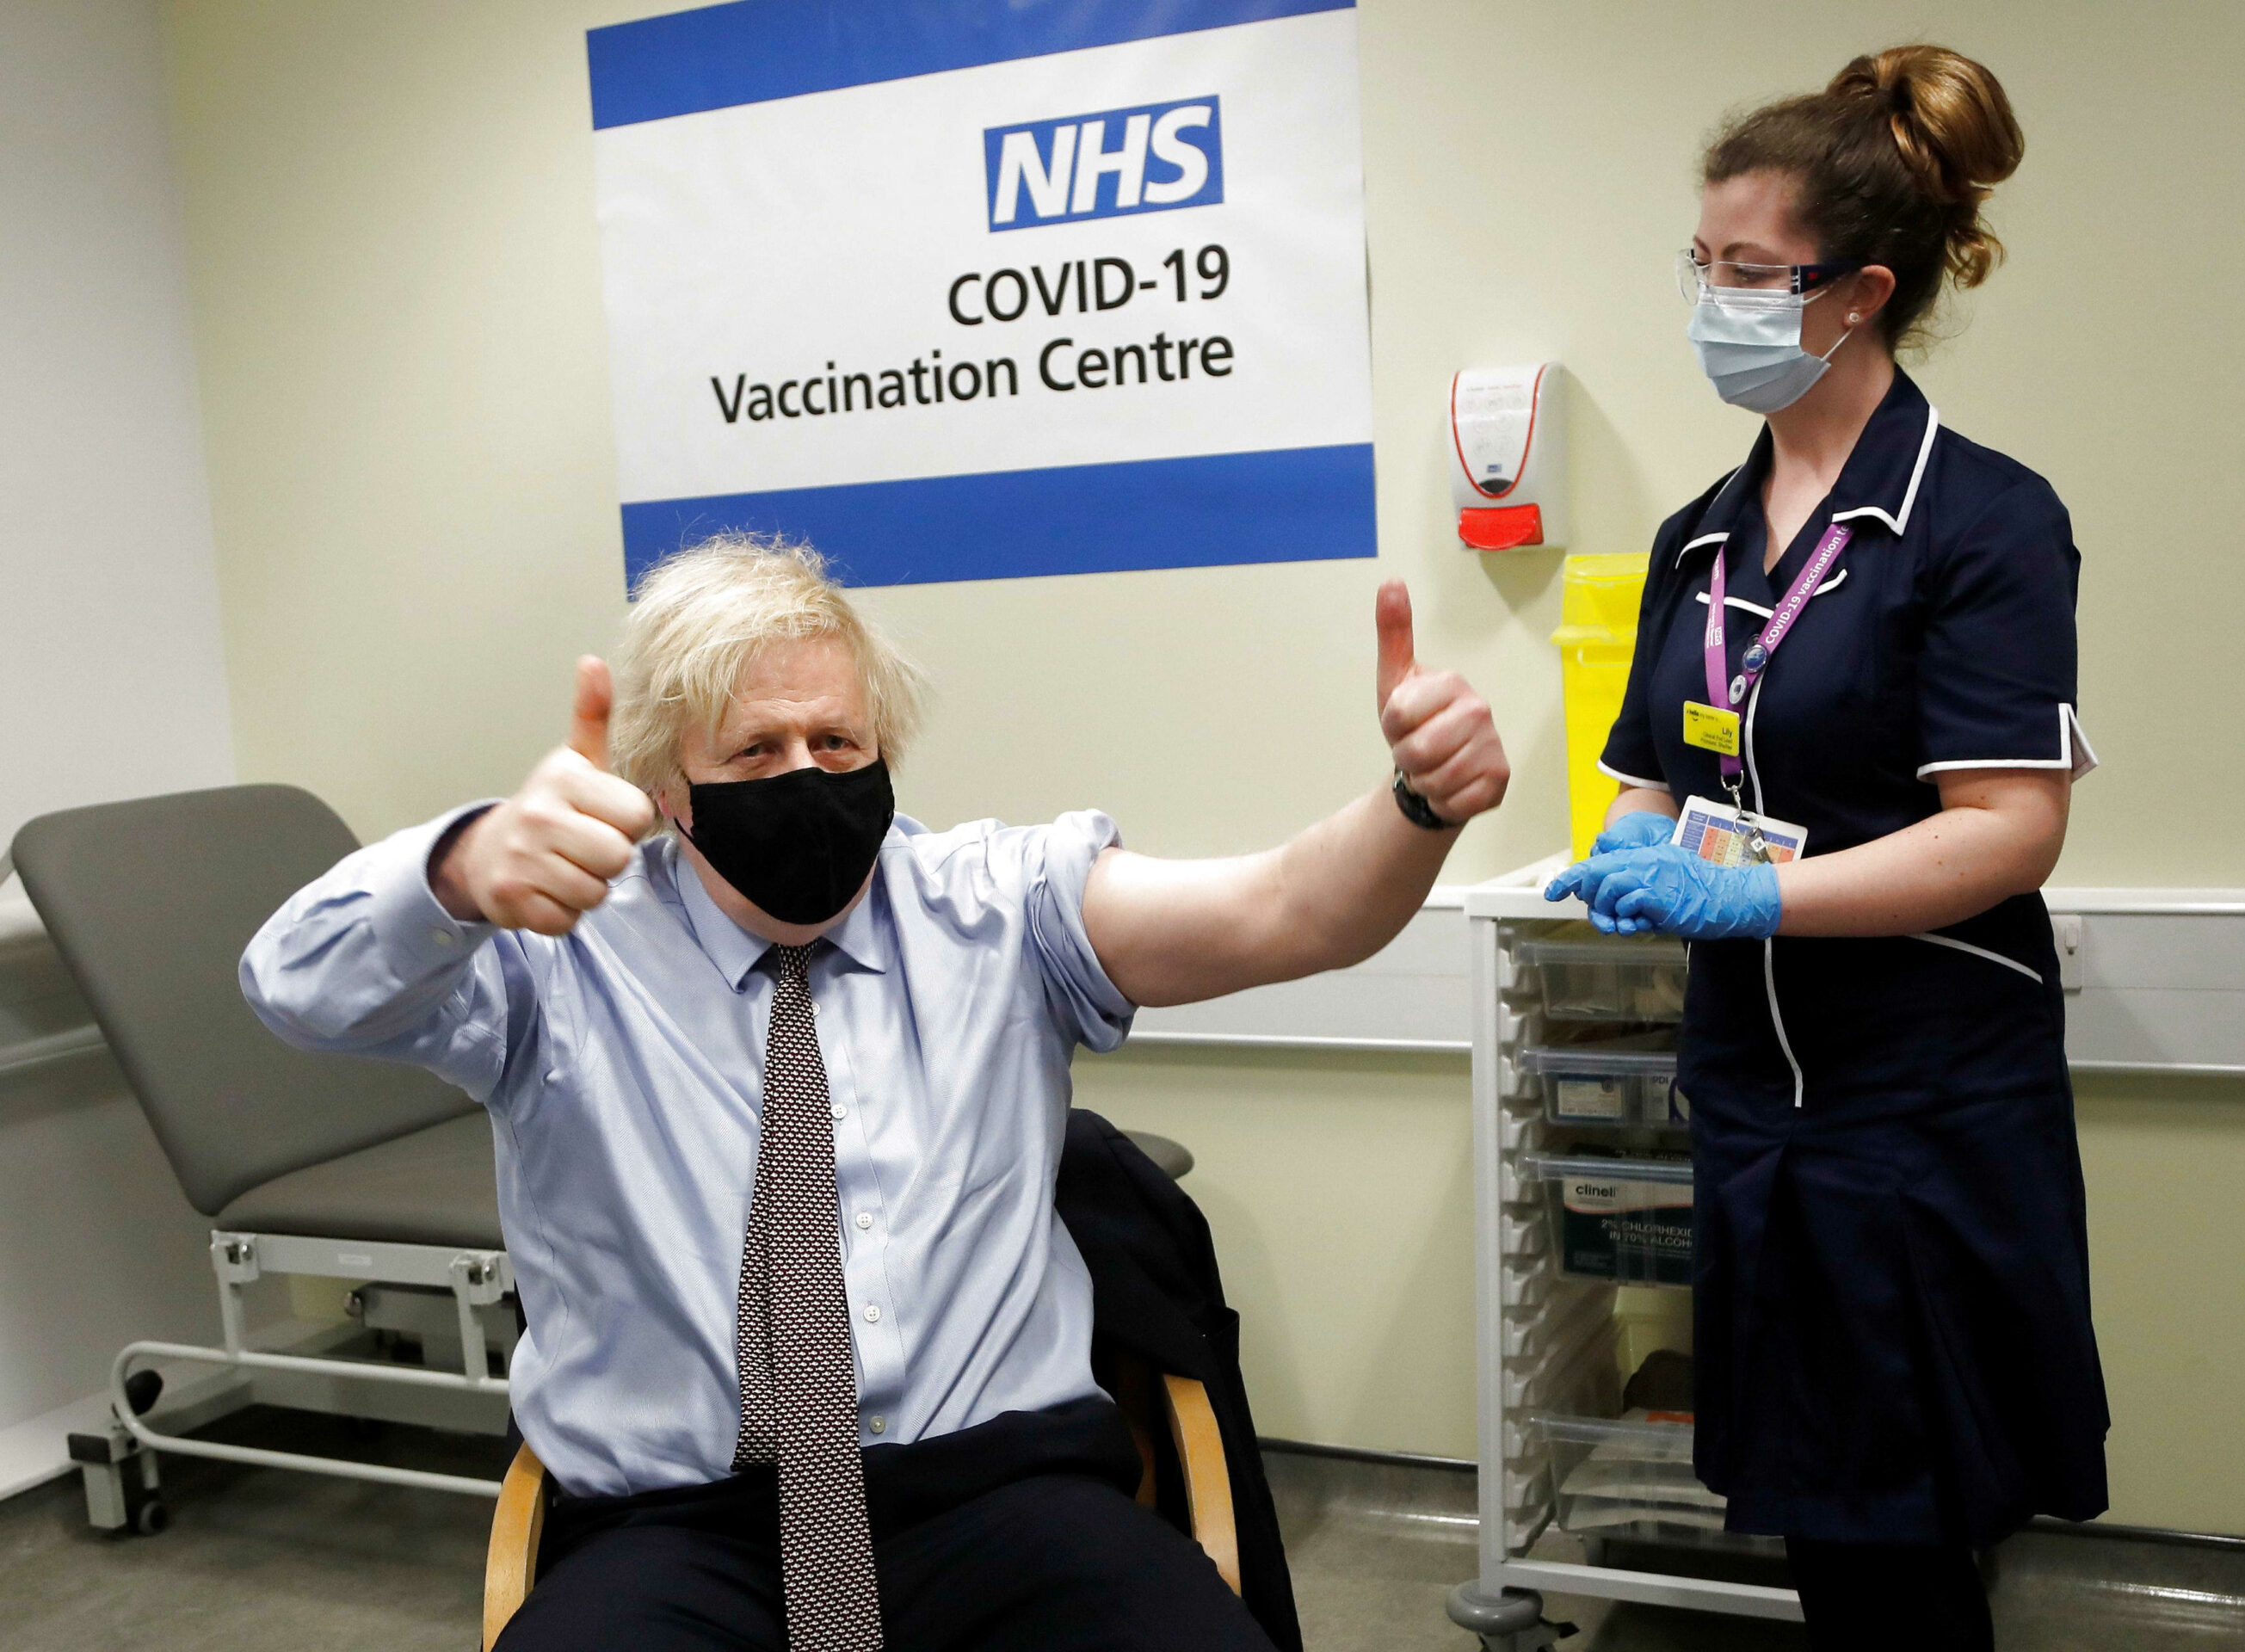 This image shows Boris Johnson in a vaccination centre with his hands in the air and thumbs up wearing a black mask. He had just received his first dose of his AstraZeneca vaccine.